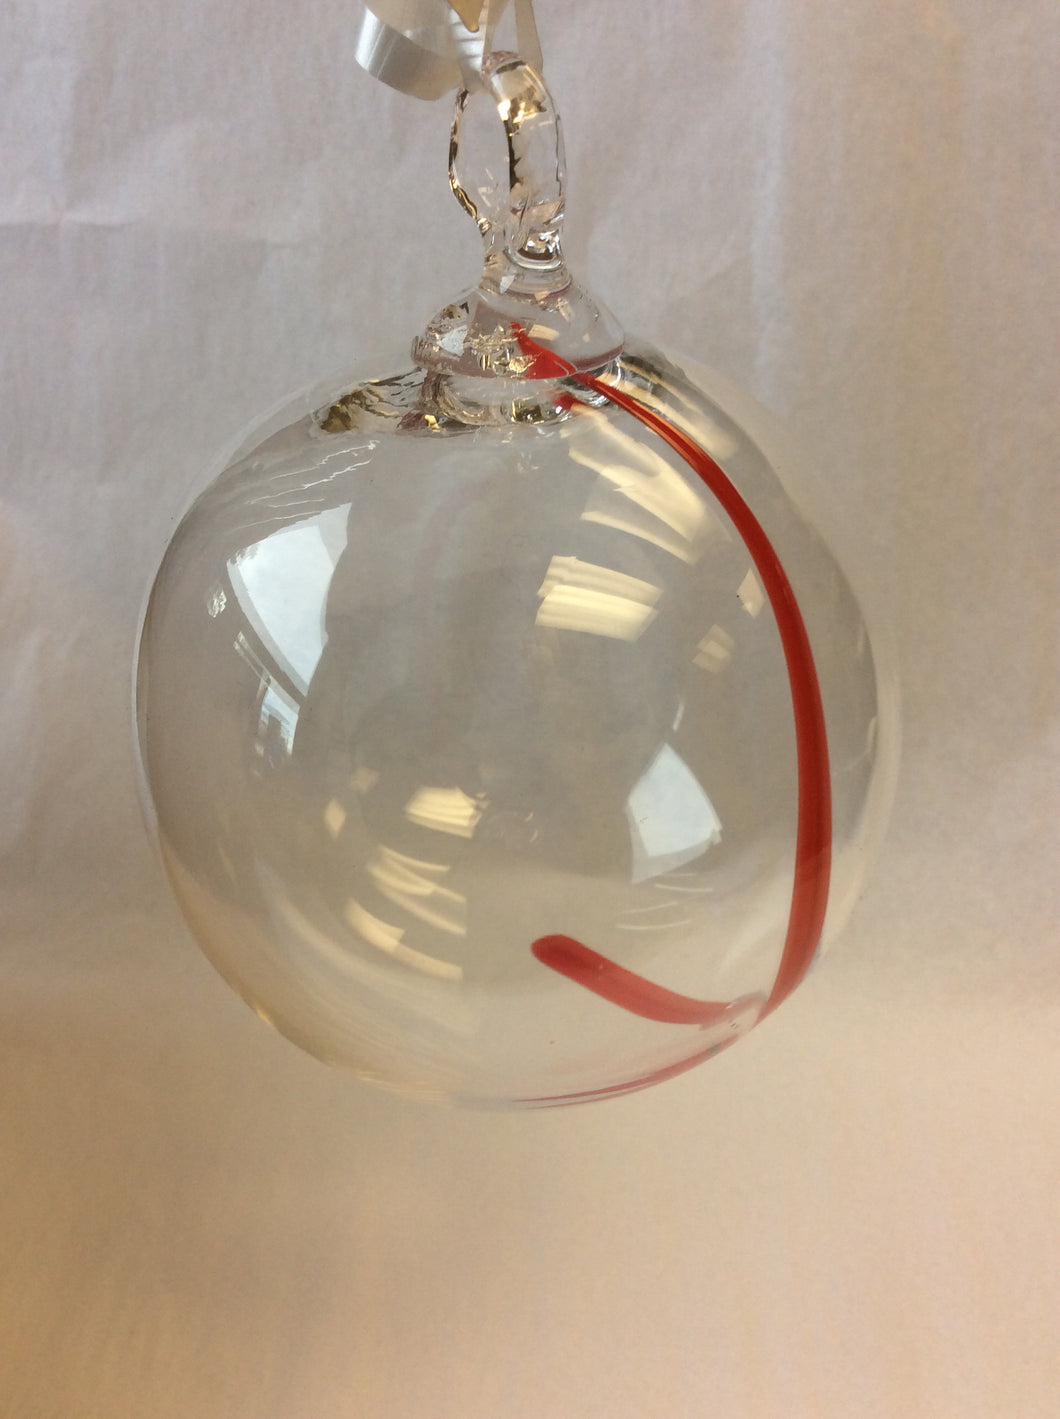 Clear with Red Stripe Ornament (8GR3220)